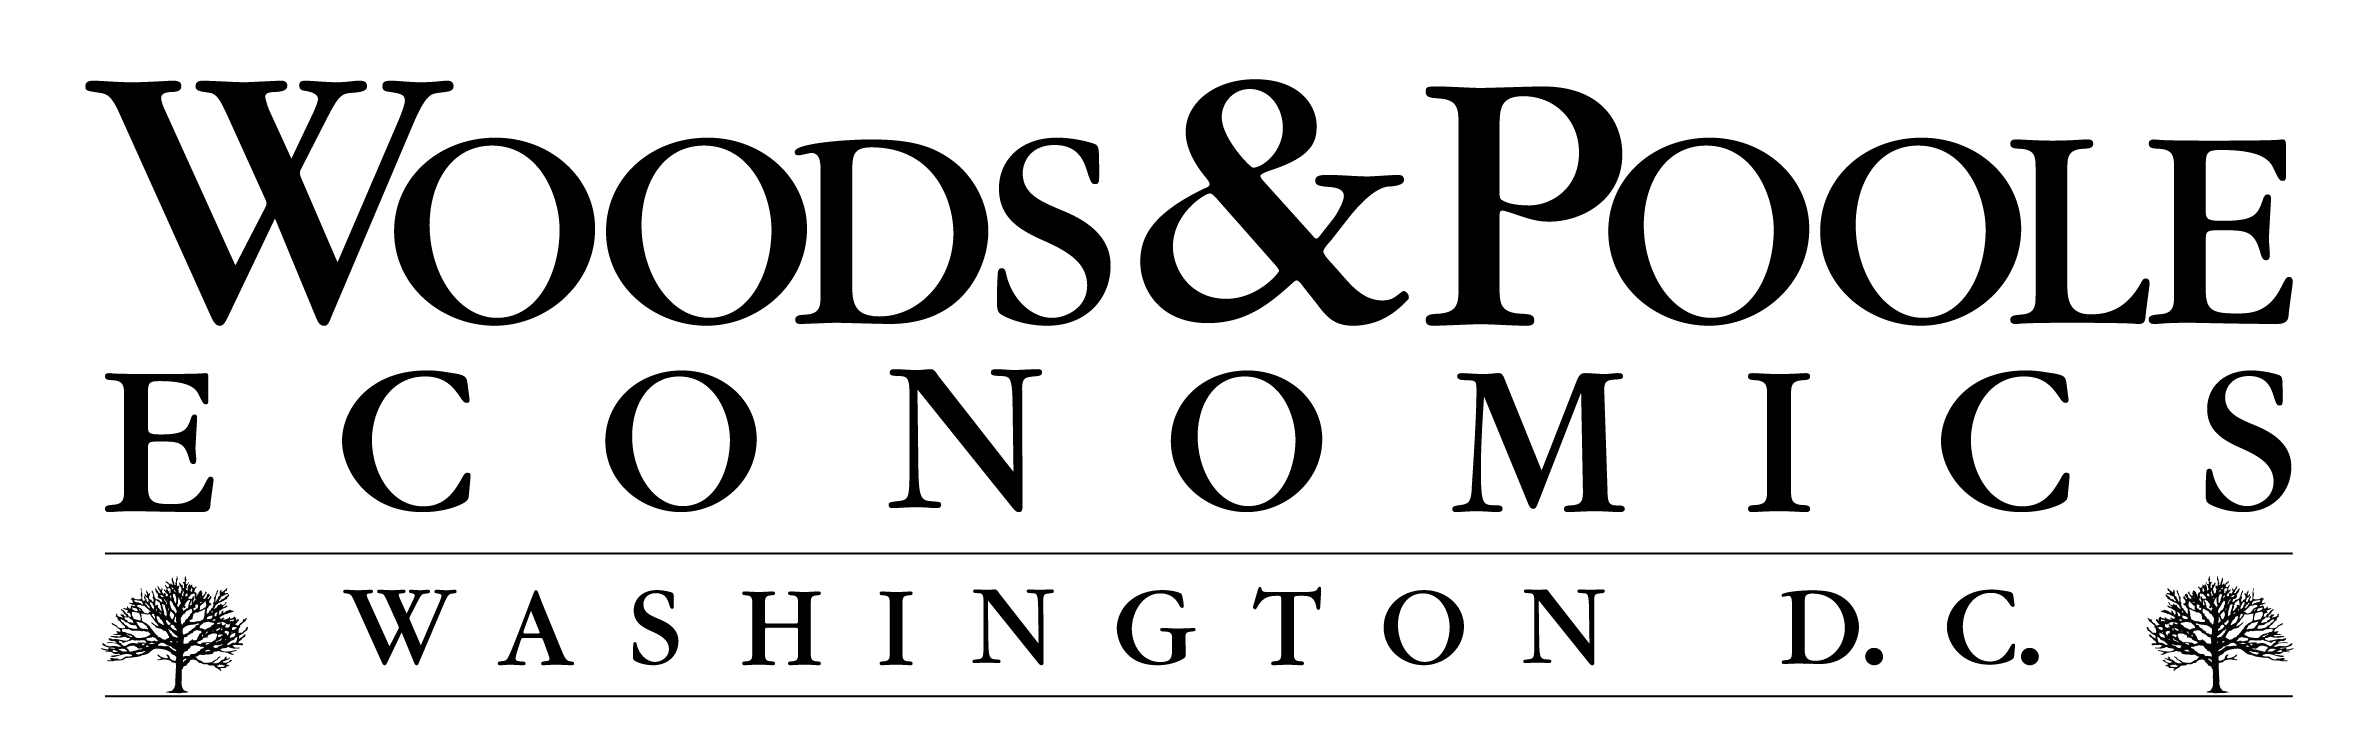 CAPE GIRARDEAU MO-IL (FIPS 16020) | Woods & Poole Economics, Inc